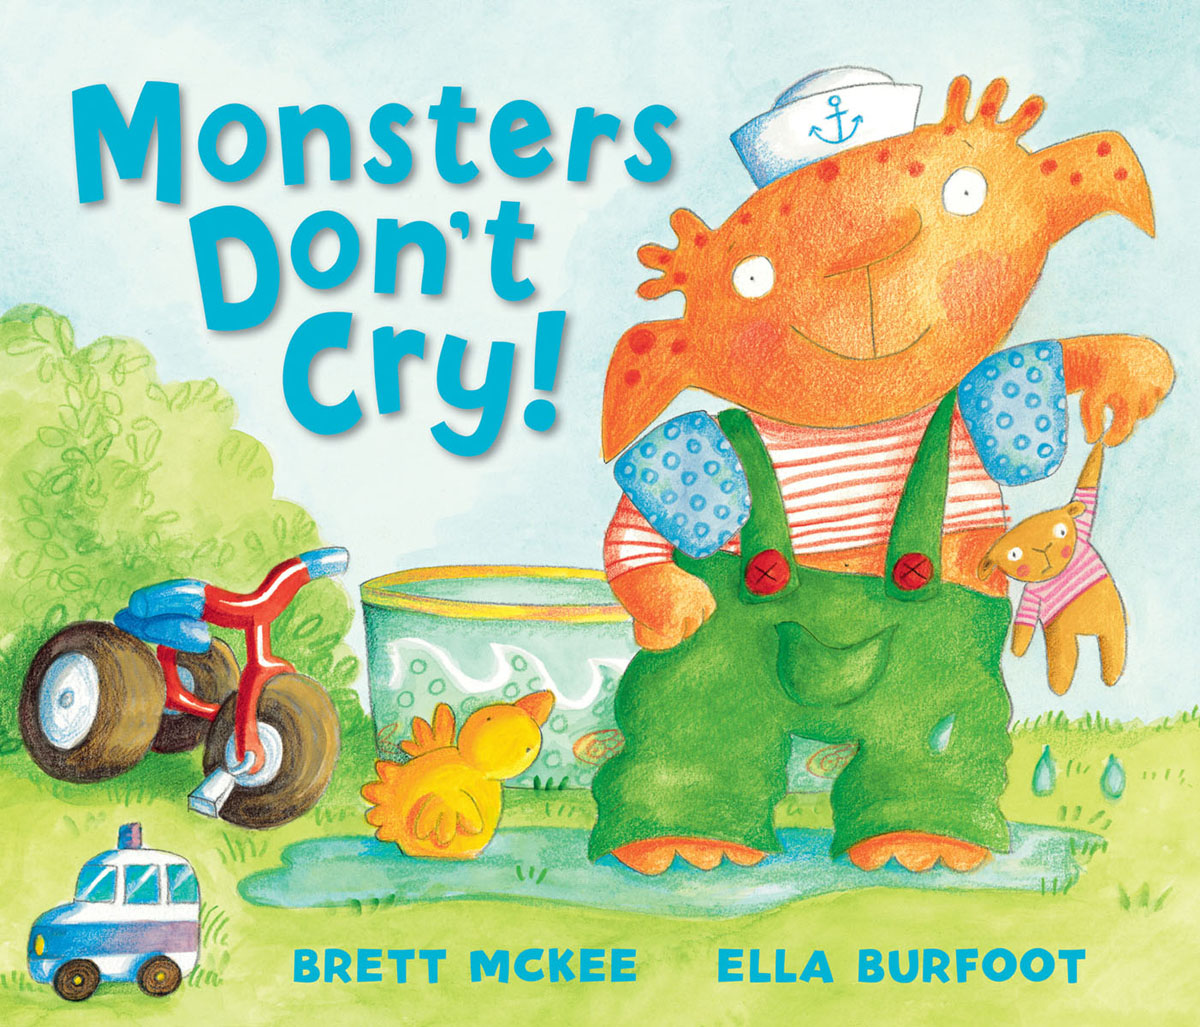 Monsters Don't Cry! romping monsters stomping monsters